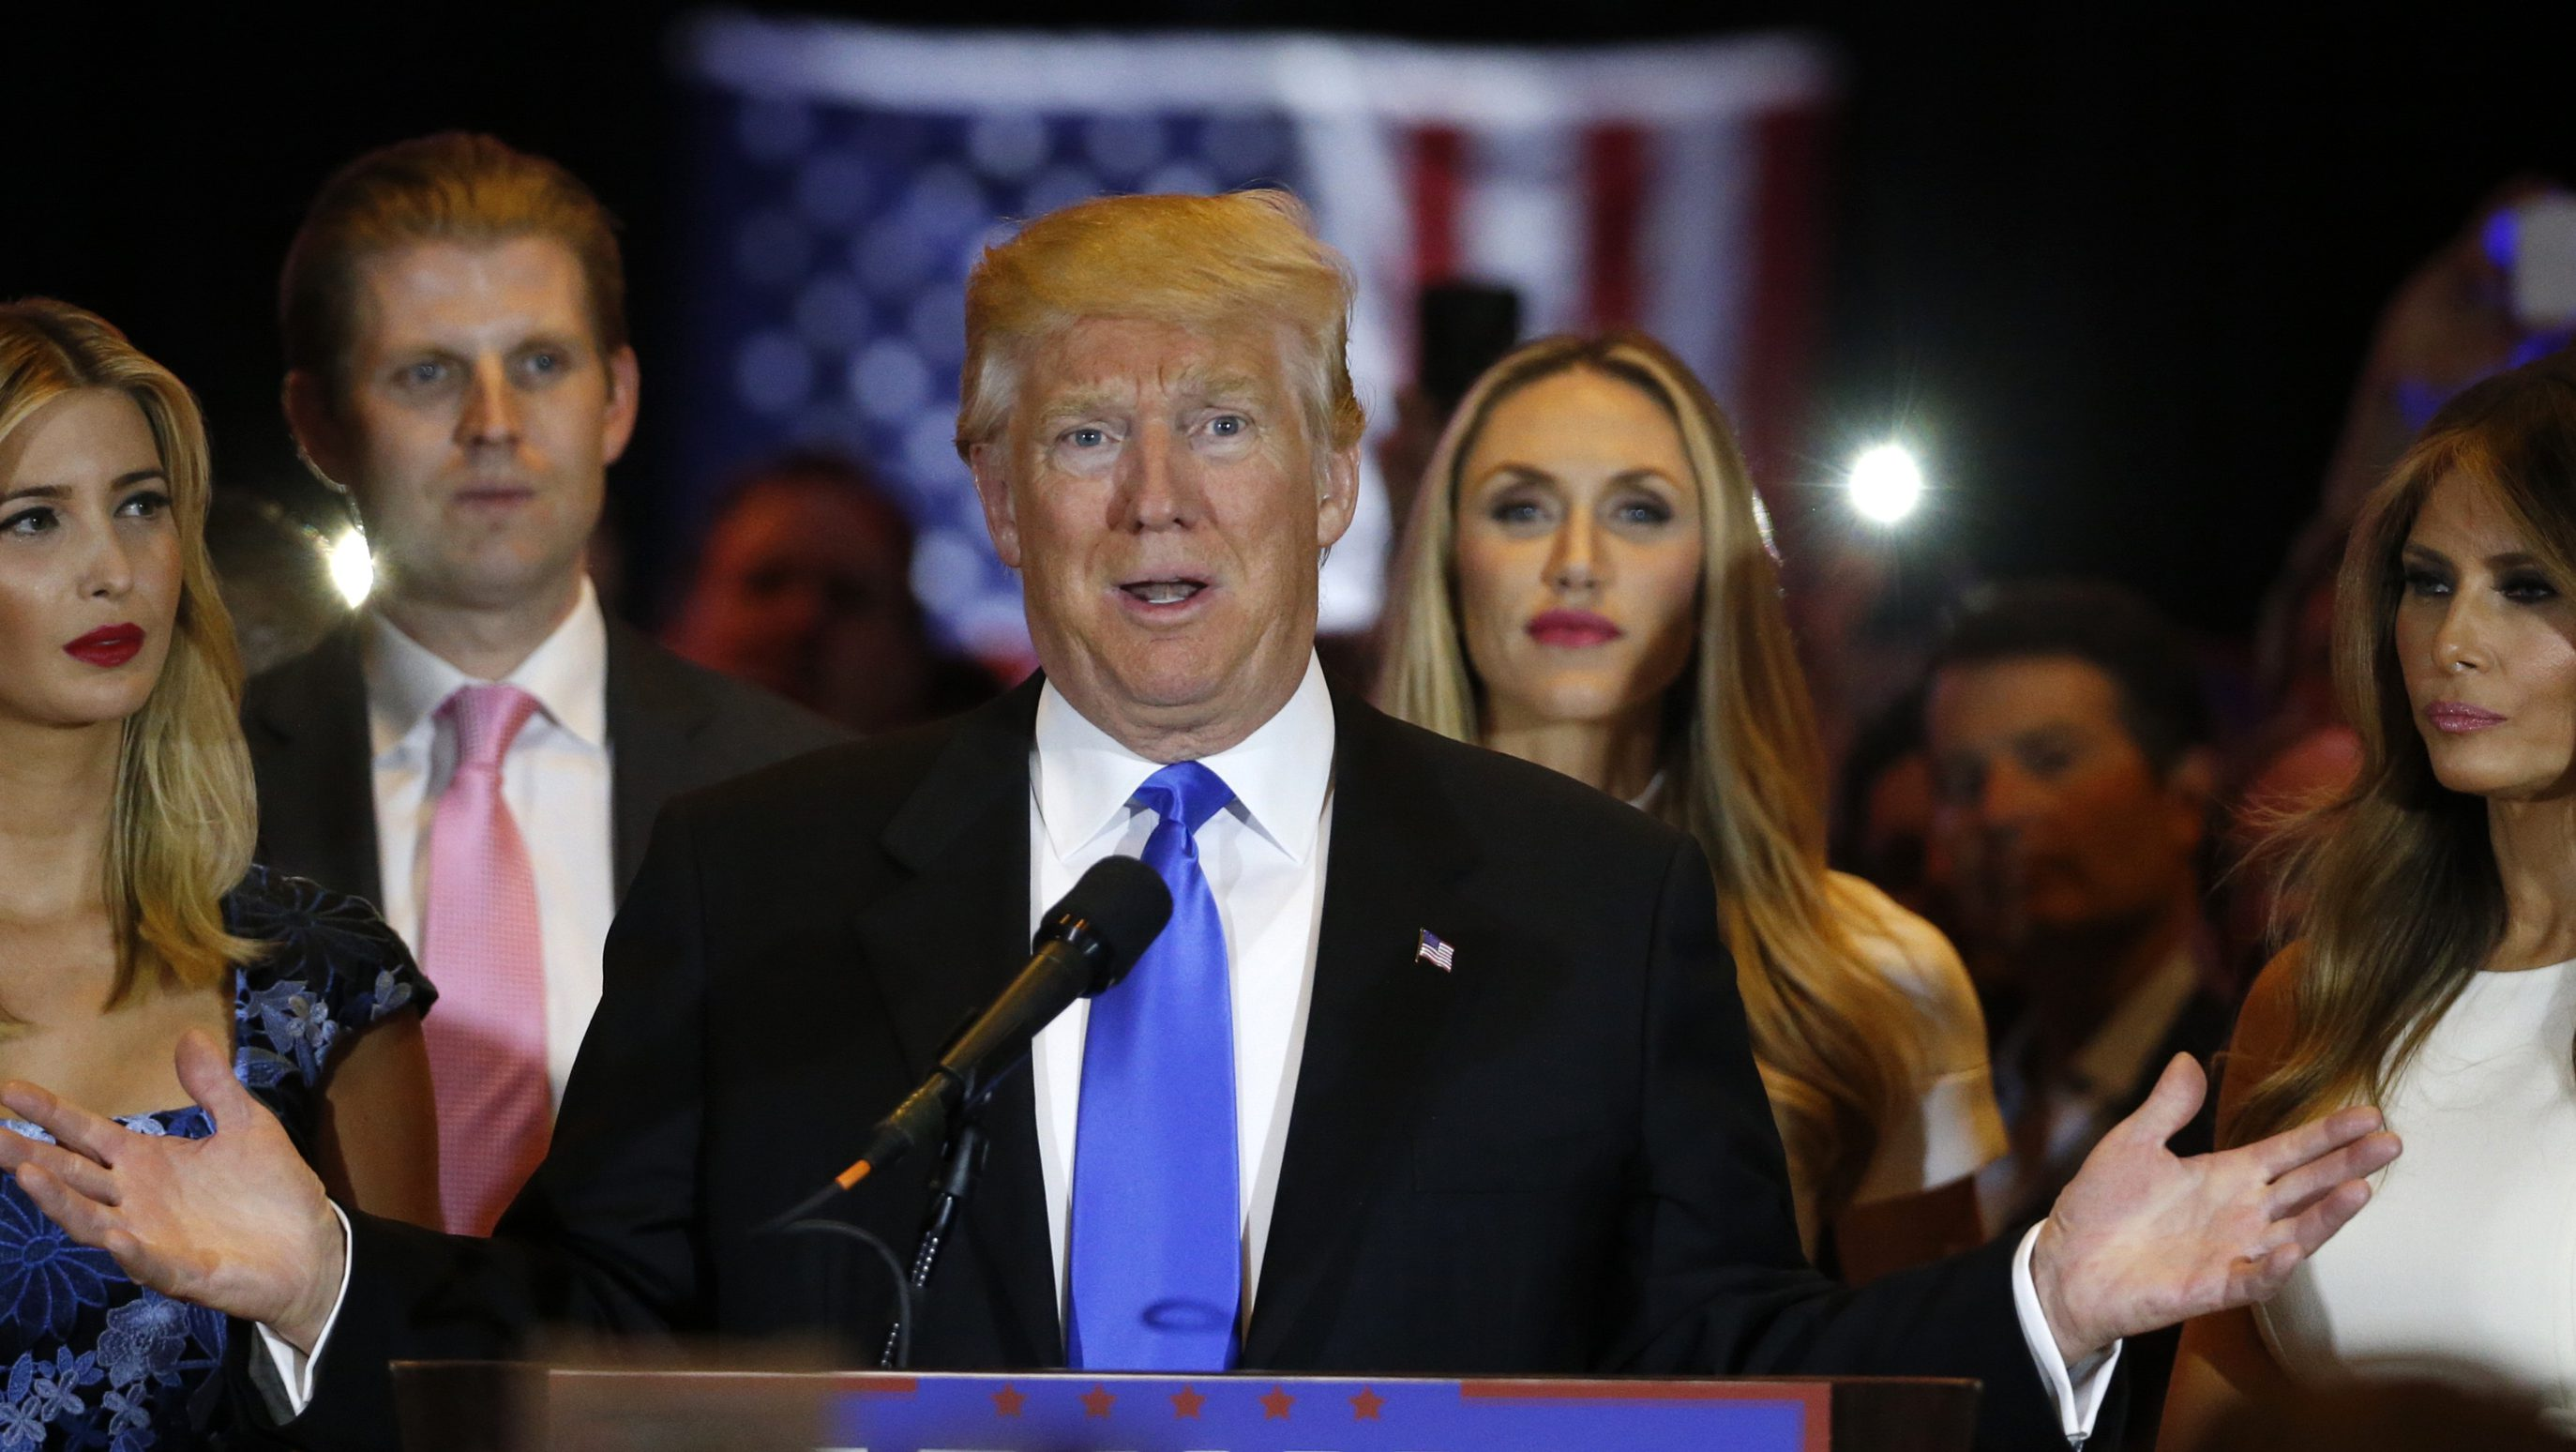 Republican U.S. presidential candidate and businessman Donald Trump speaks to supporters following the results of the Indiana state primary at Trump Tower in Manhattan, New York